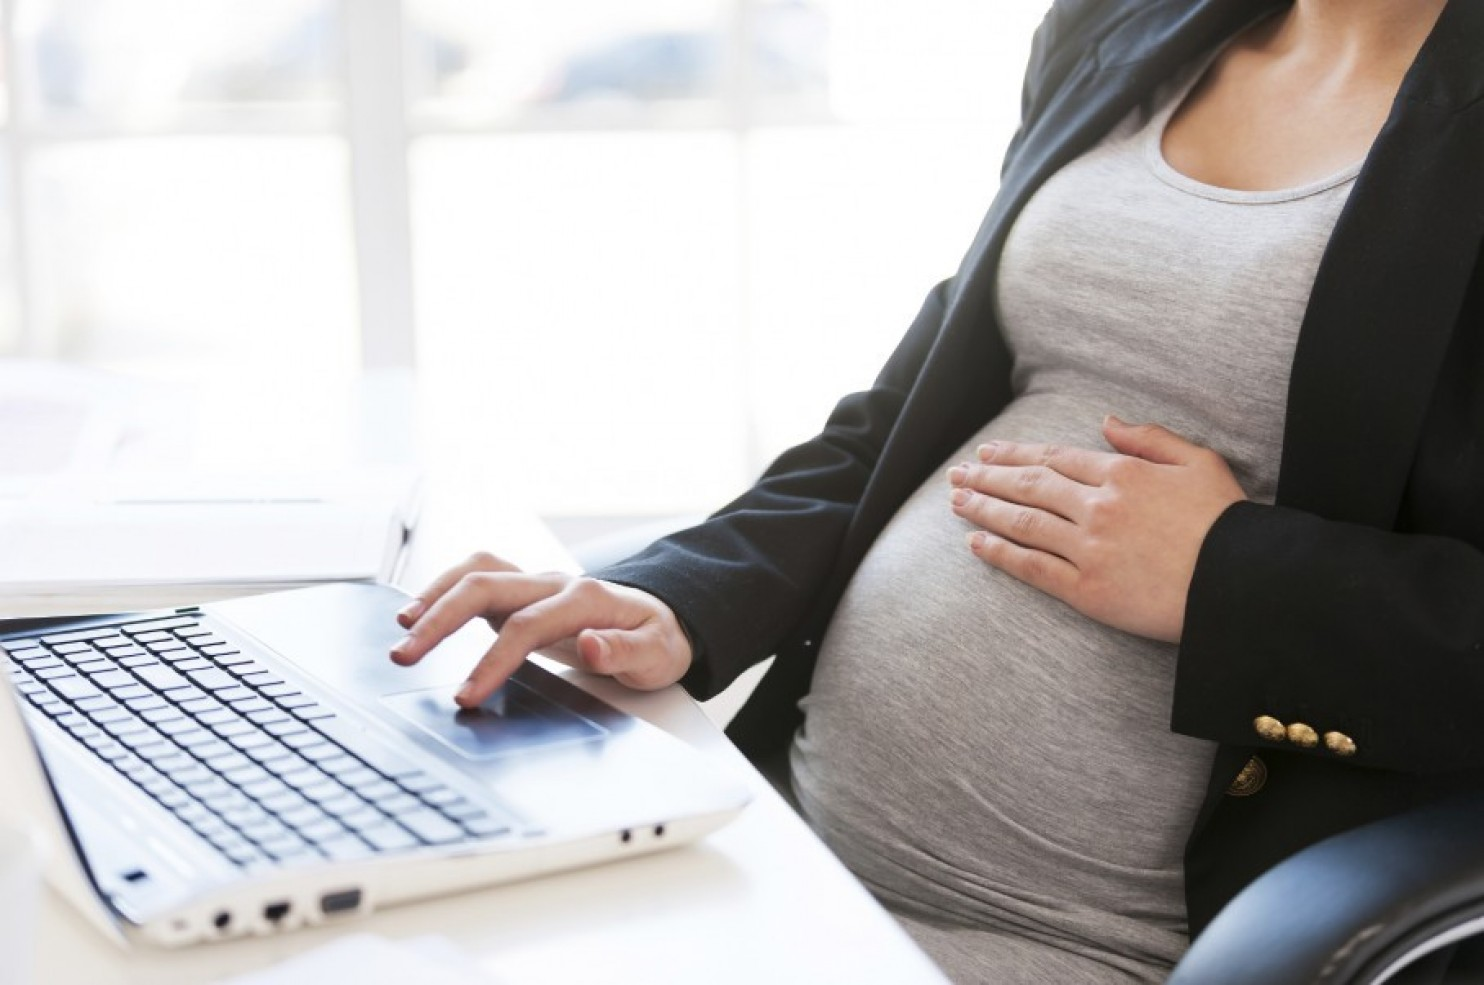 Should Employers Be Required To Accommodate Expecting Moms?